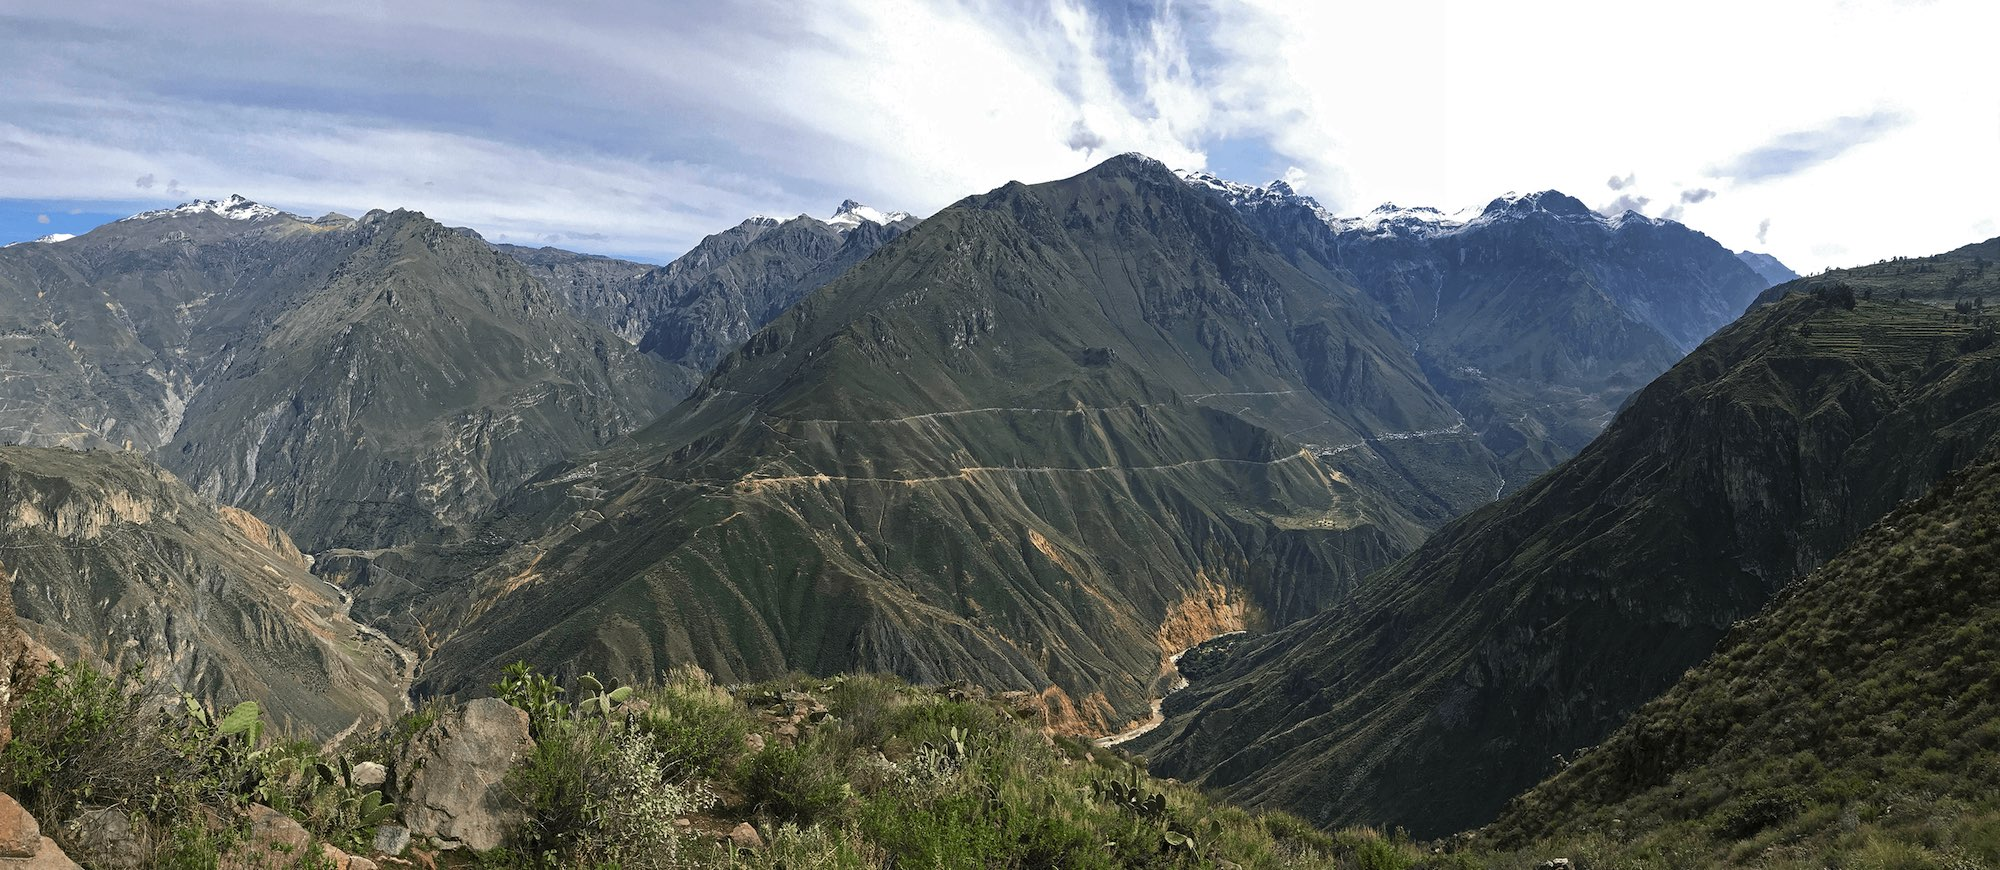 Colca Canyon Peru panorama